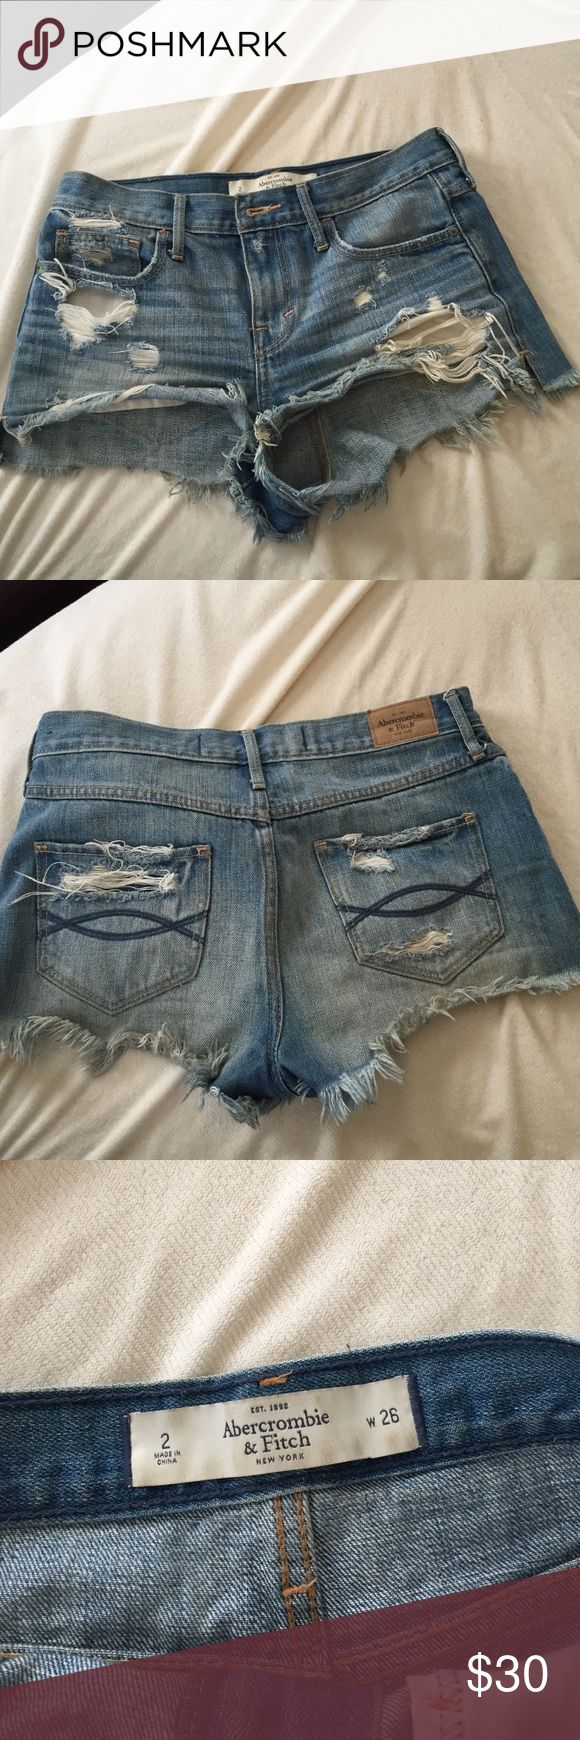 Abercrombie & Fitch high rise ripped shorts High waisted ripped jean shorts. The pockets do come out of the shirts when worn. So practical for summer! Abercrombie & Fitch Shorts Jean Shorts